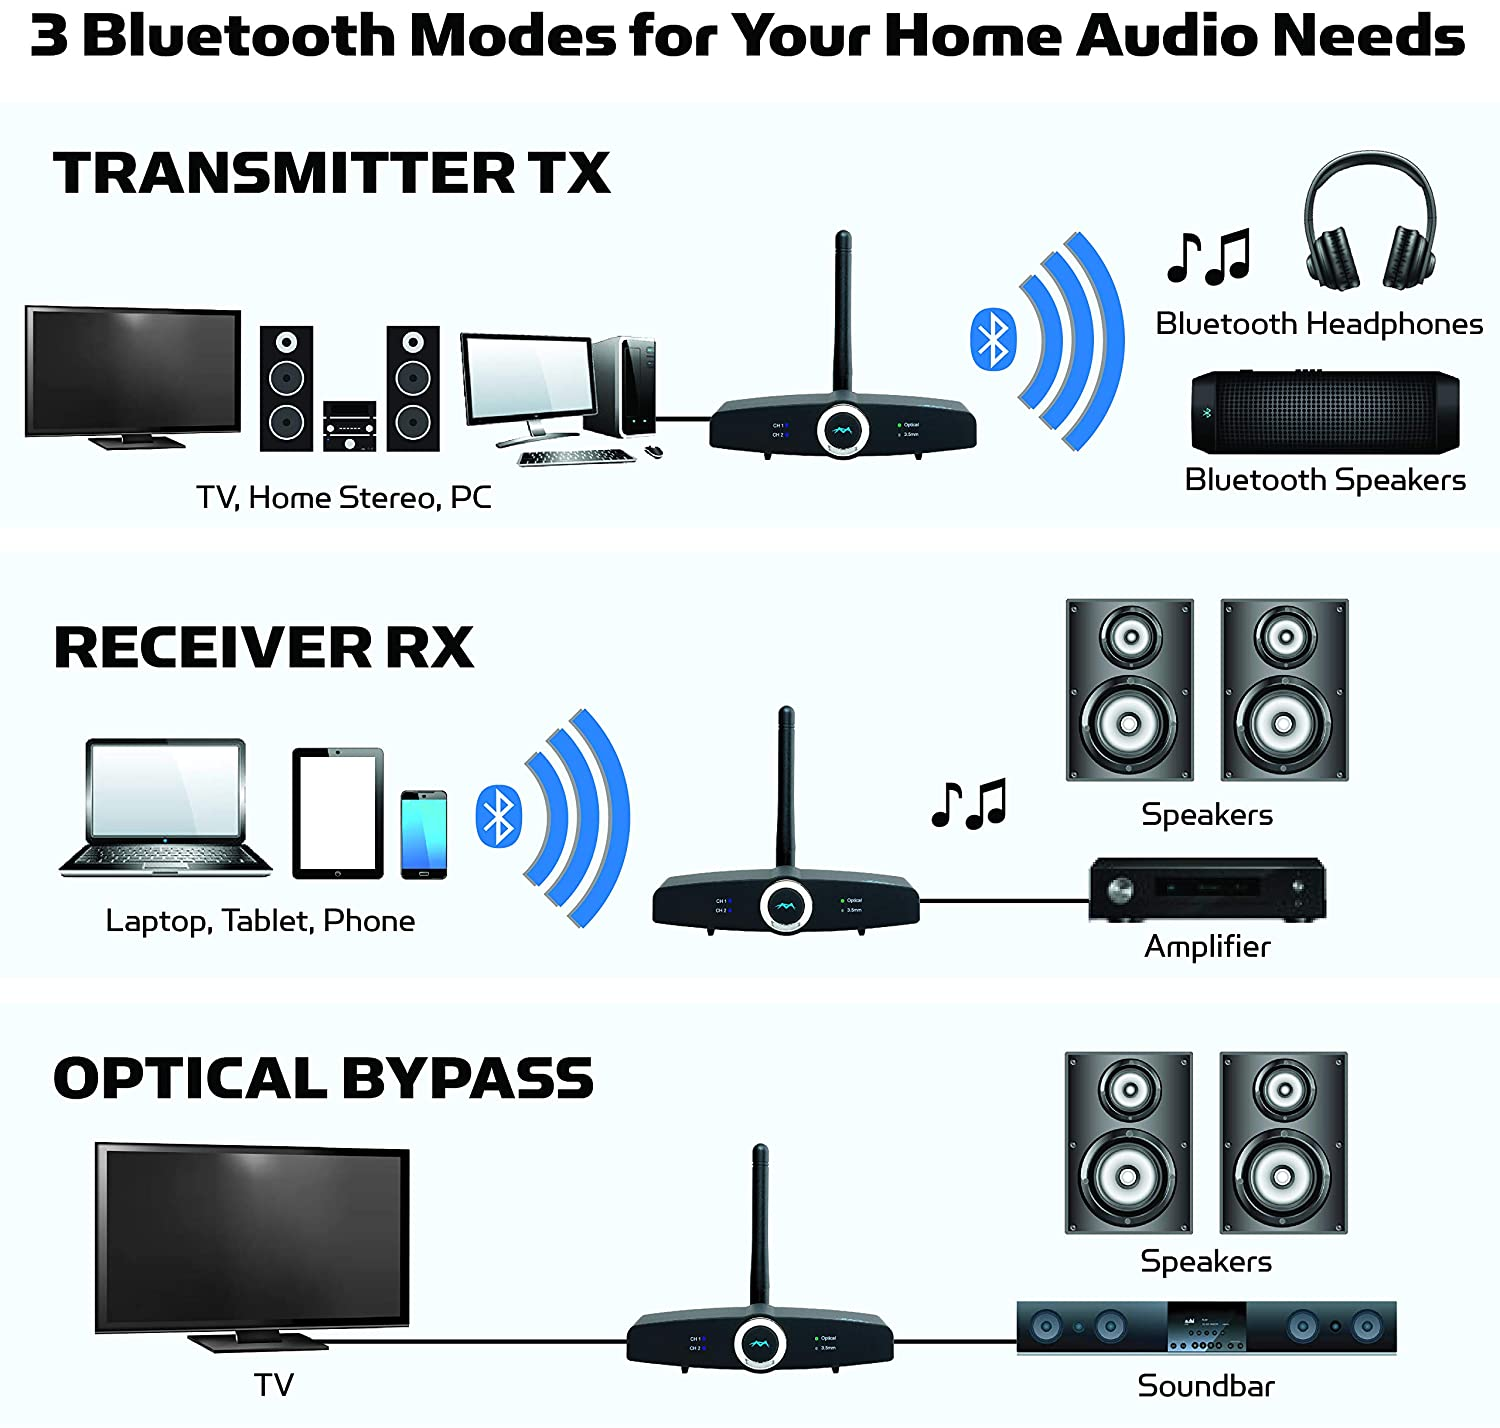 Miccus Proven 300ft Long Range Bluetooth Transmitter Small Tv Diagram Receiver 42 Wireless Adapter For Stereo Listen In Hd No Audio Delay Pair To 2